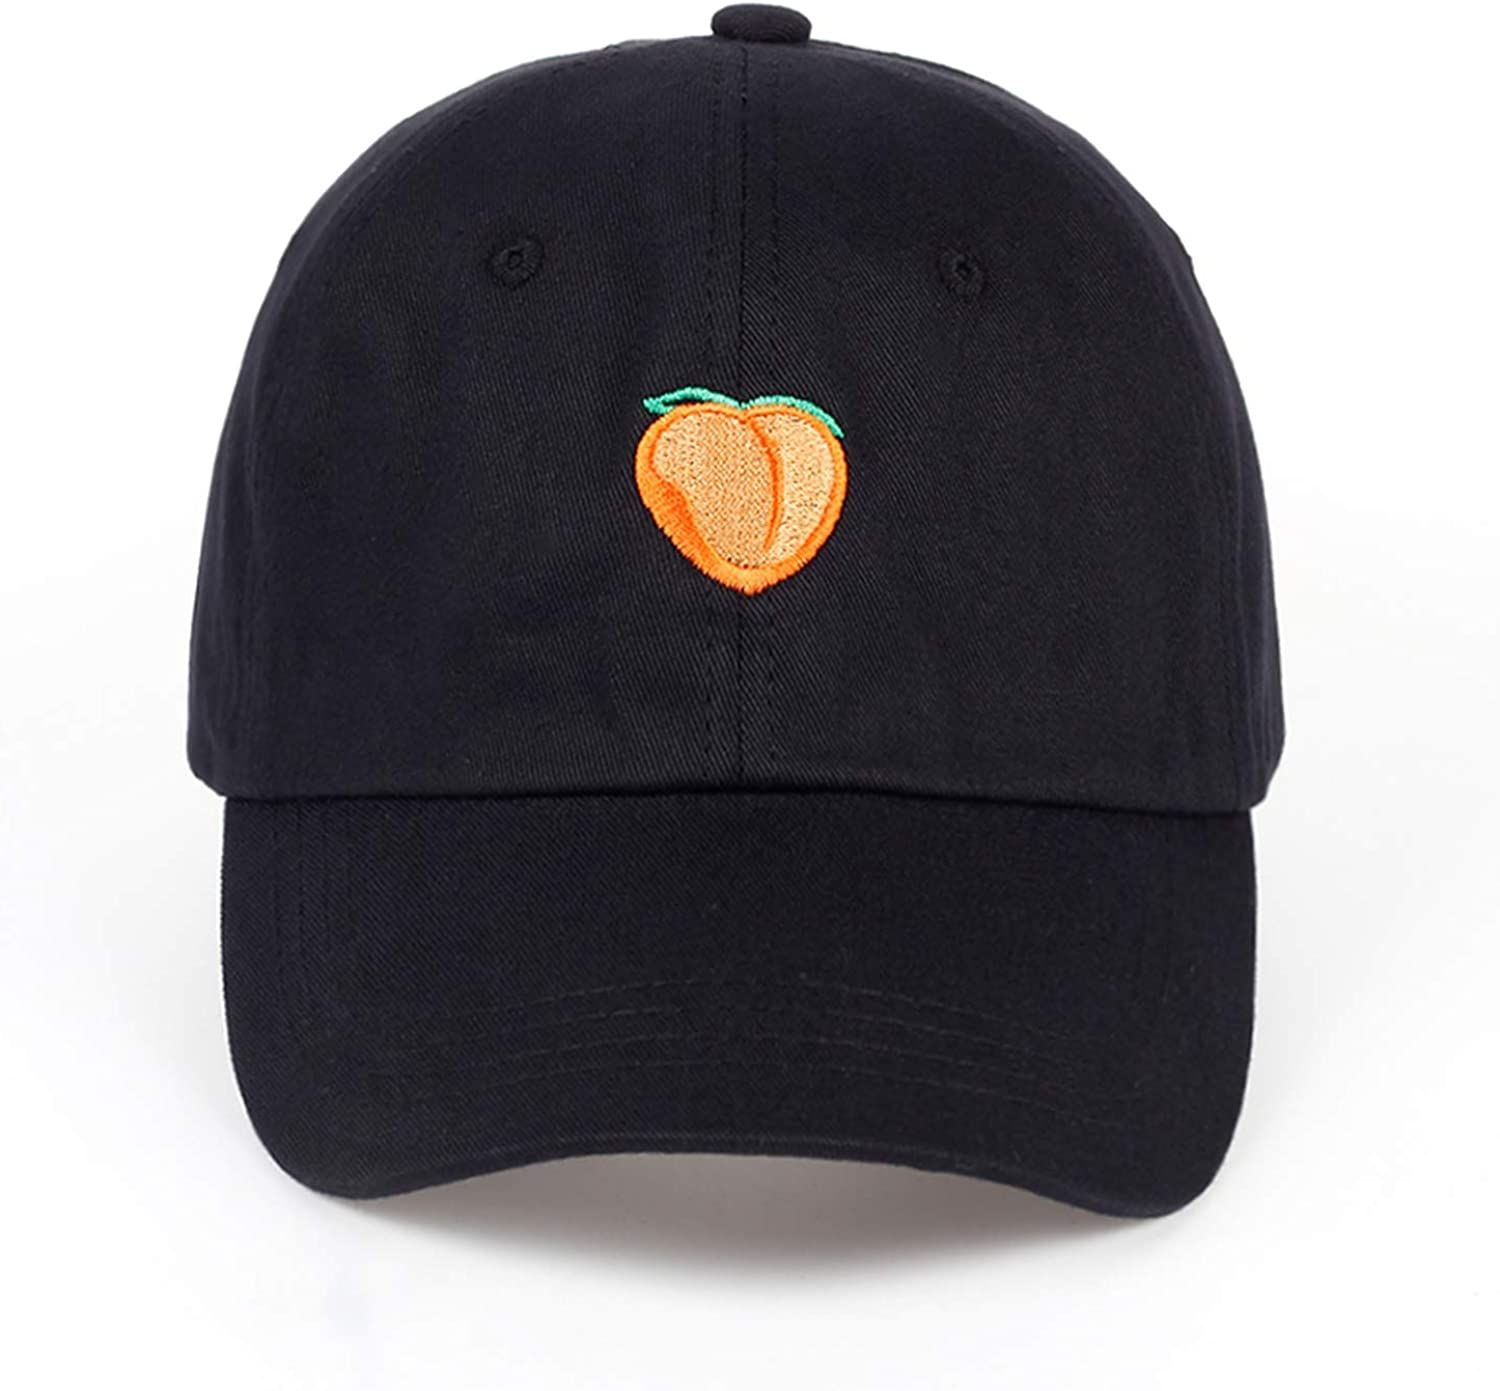 Wilbur Gold Autumn Womens Cotton hat Fashion Men and Women Should be Adjusted Adult hat Embroidery Peach Baseball Cap